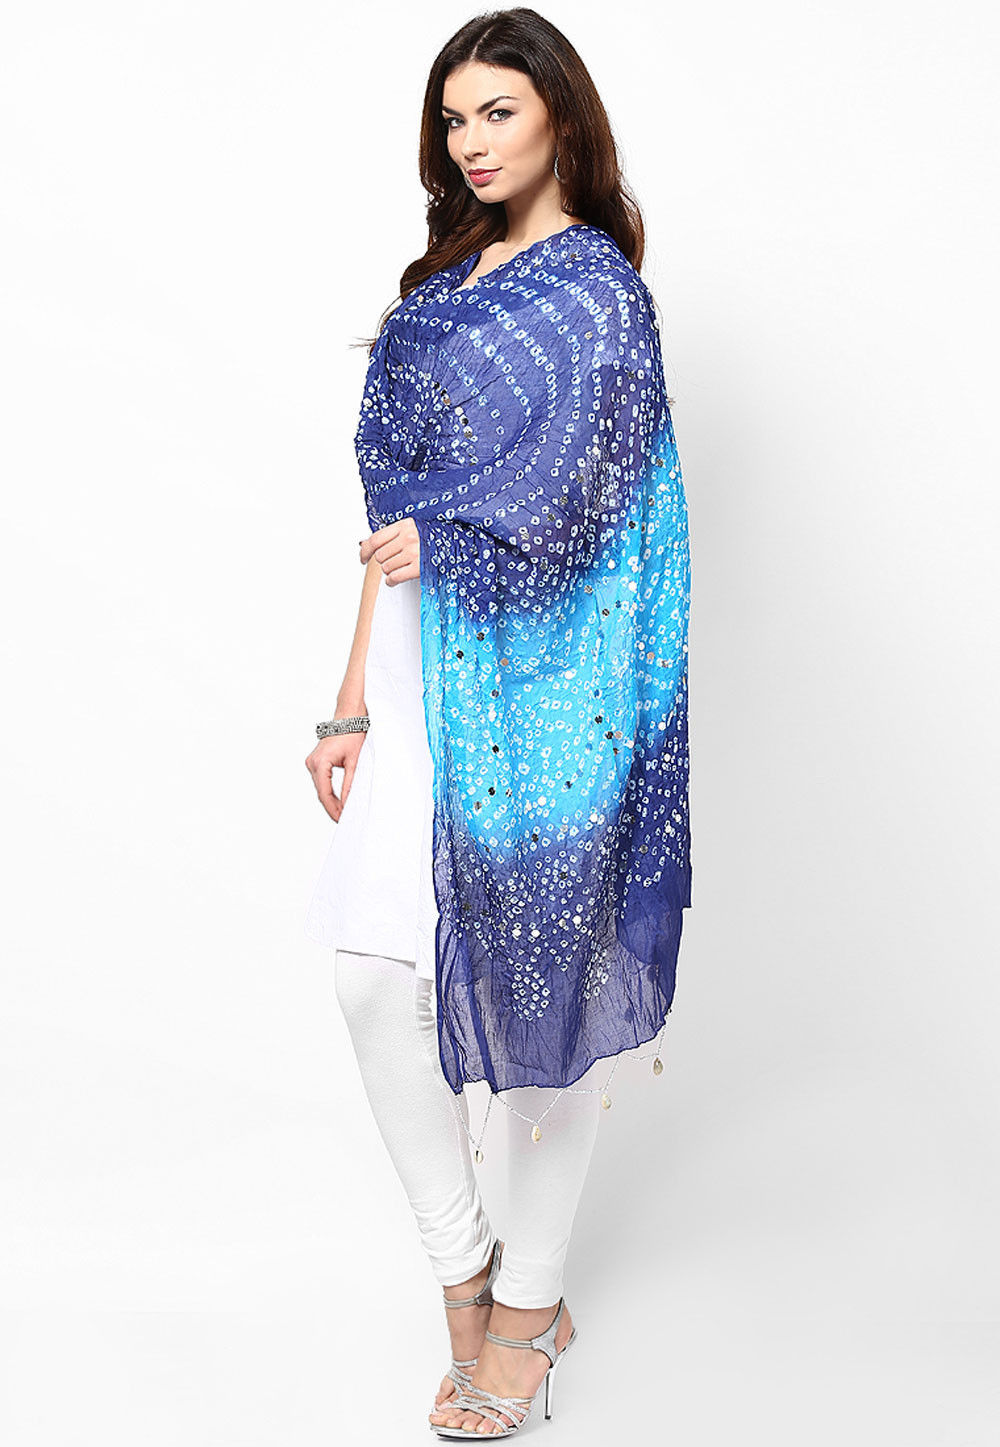 Bandhani Printed Cotton Dupatta in Blue and Turquoise